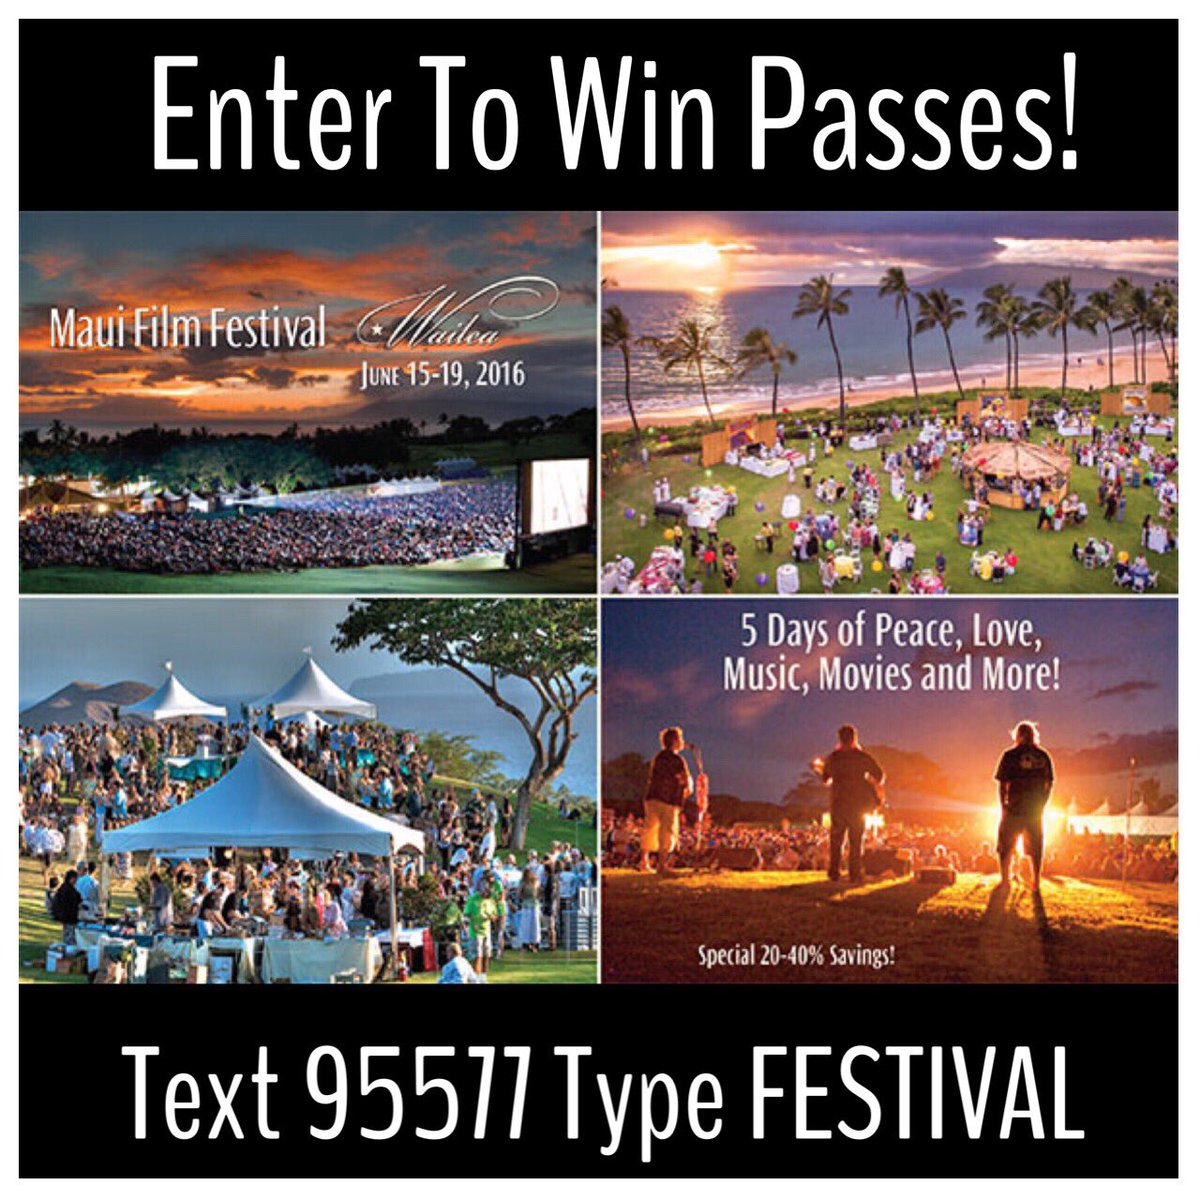 Enter for a chance to win Passes! @mauifilmfest  Standard Txt rates may apply! #mauifilm #mffsc #hawaii #maui https://t.co/2TXiZr5QNJ